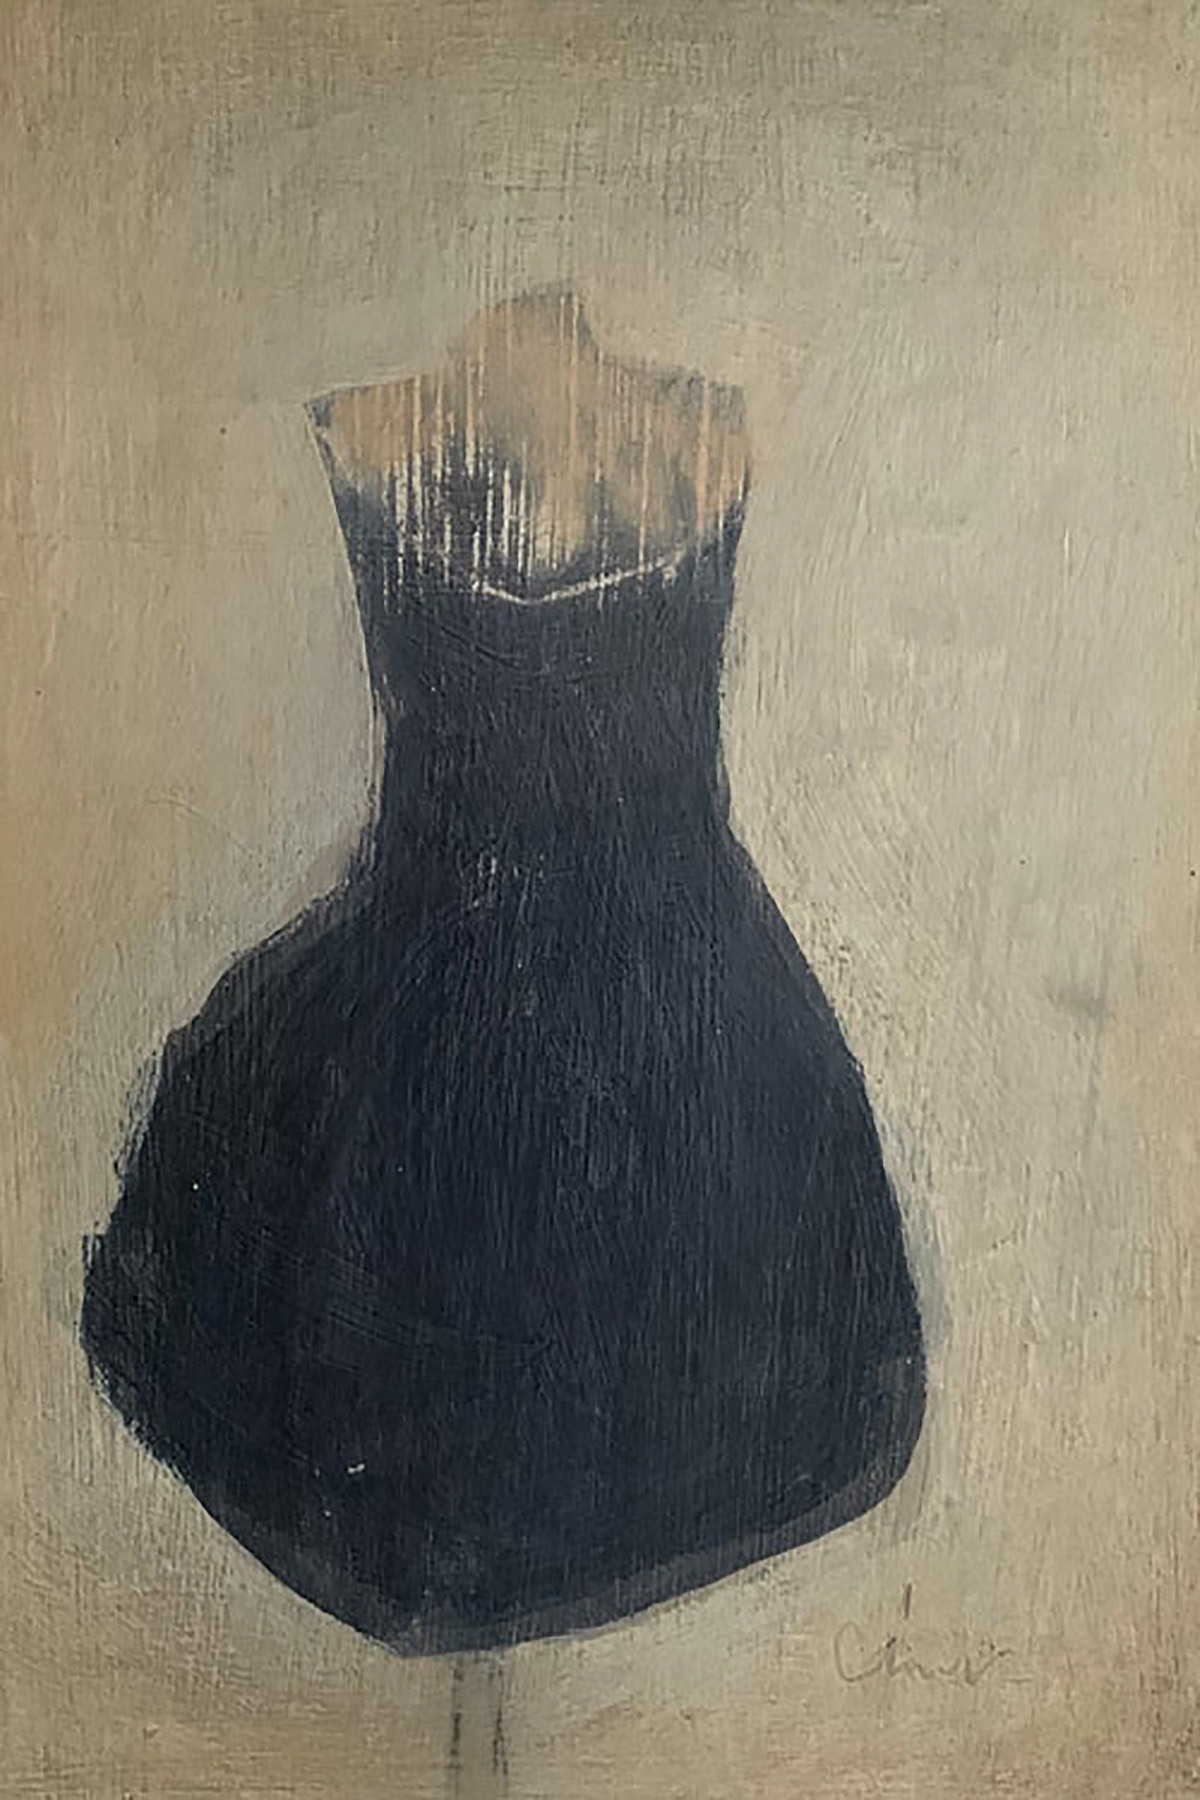 LBD, conte and oil on gesso panel